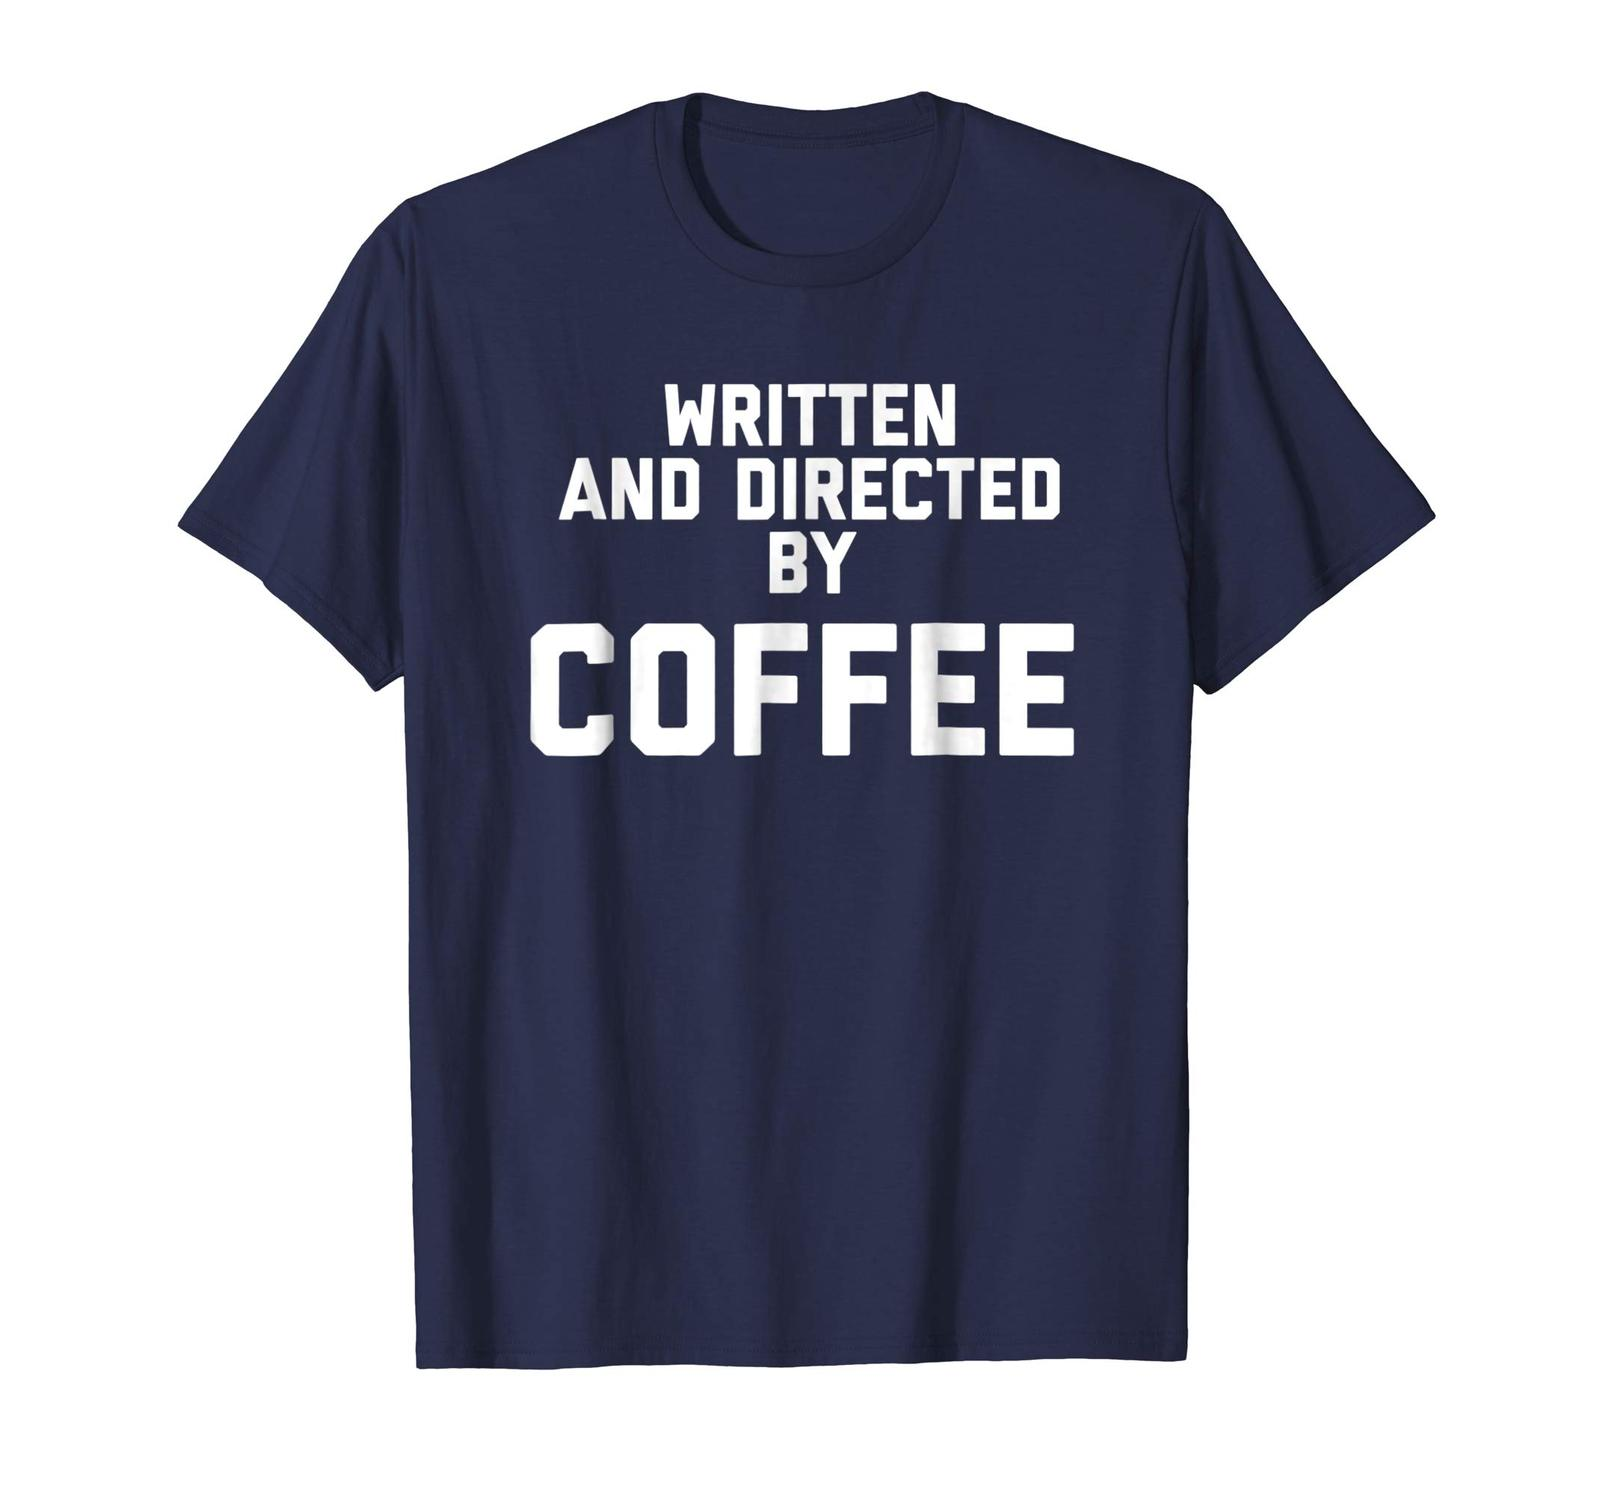 Brother Shirts - Written And Directed By Coffee Funny T-Shirt Men